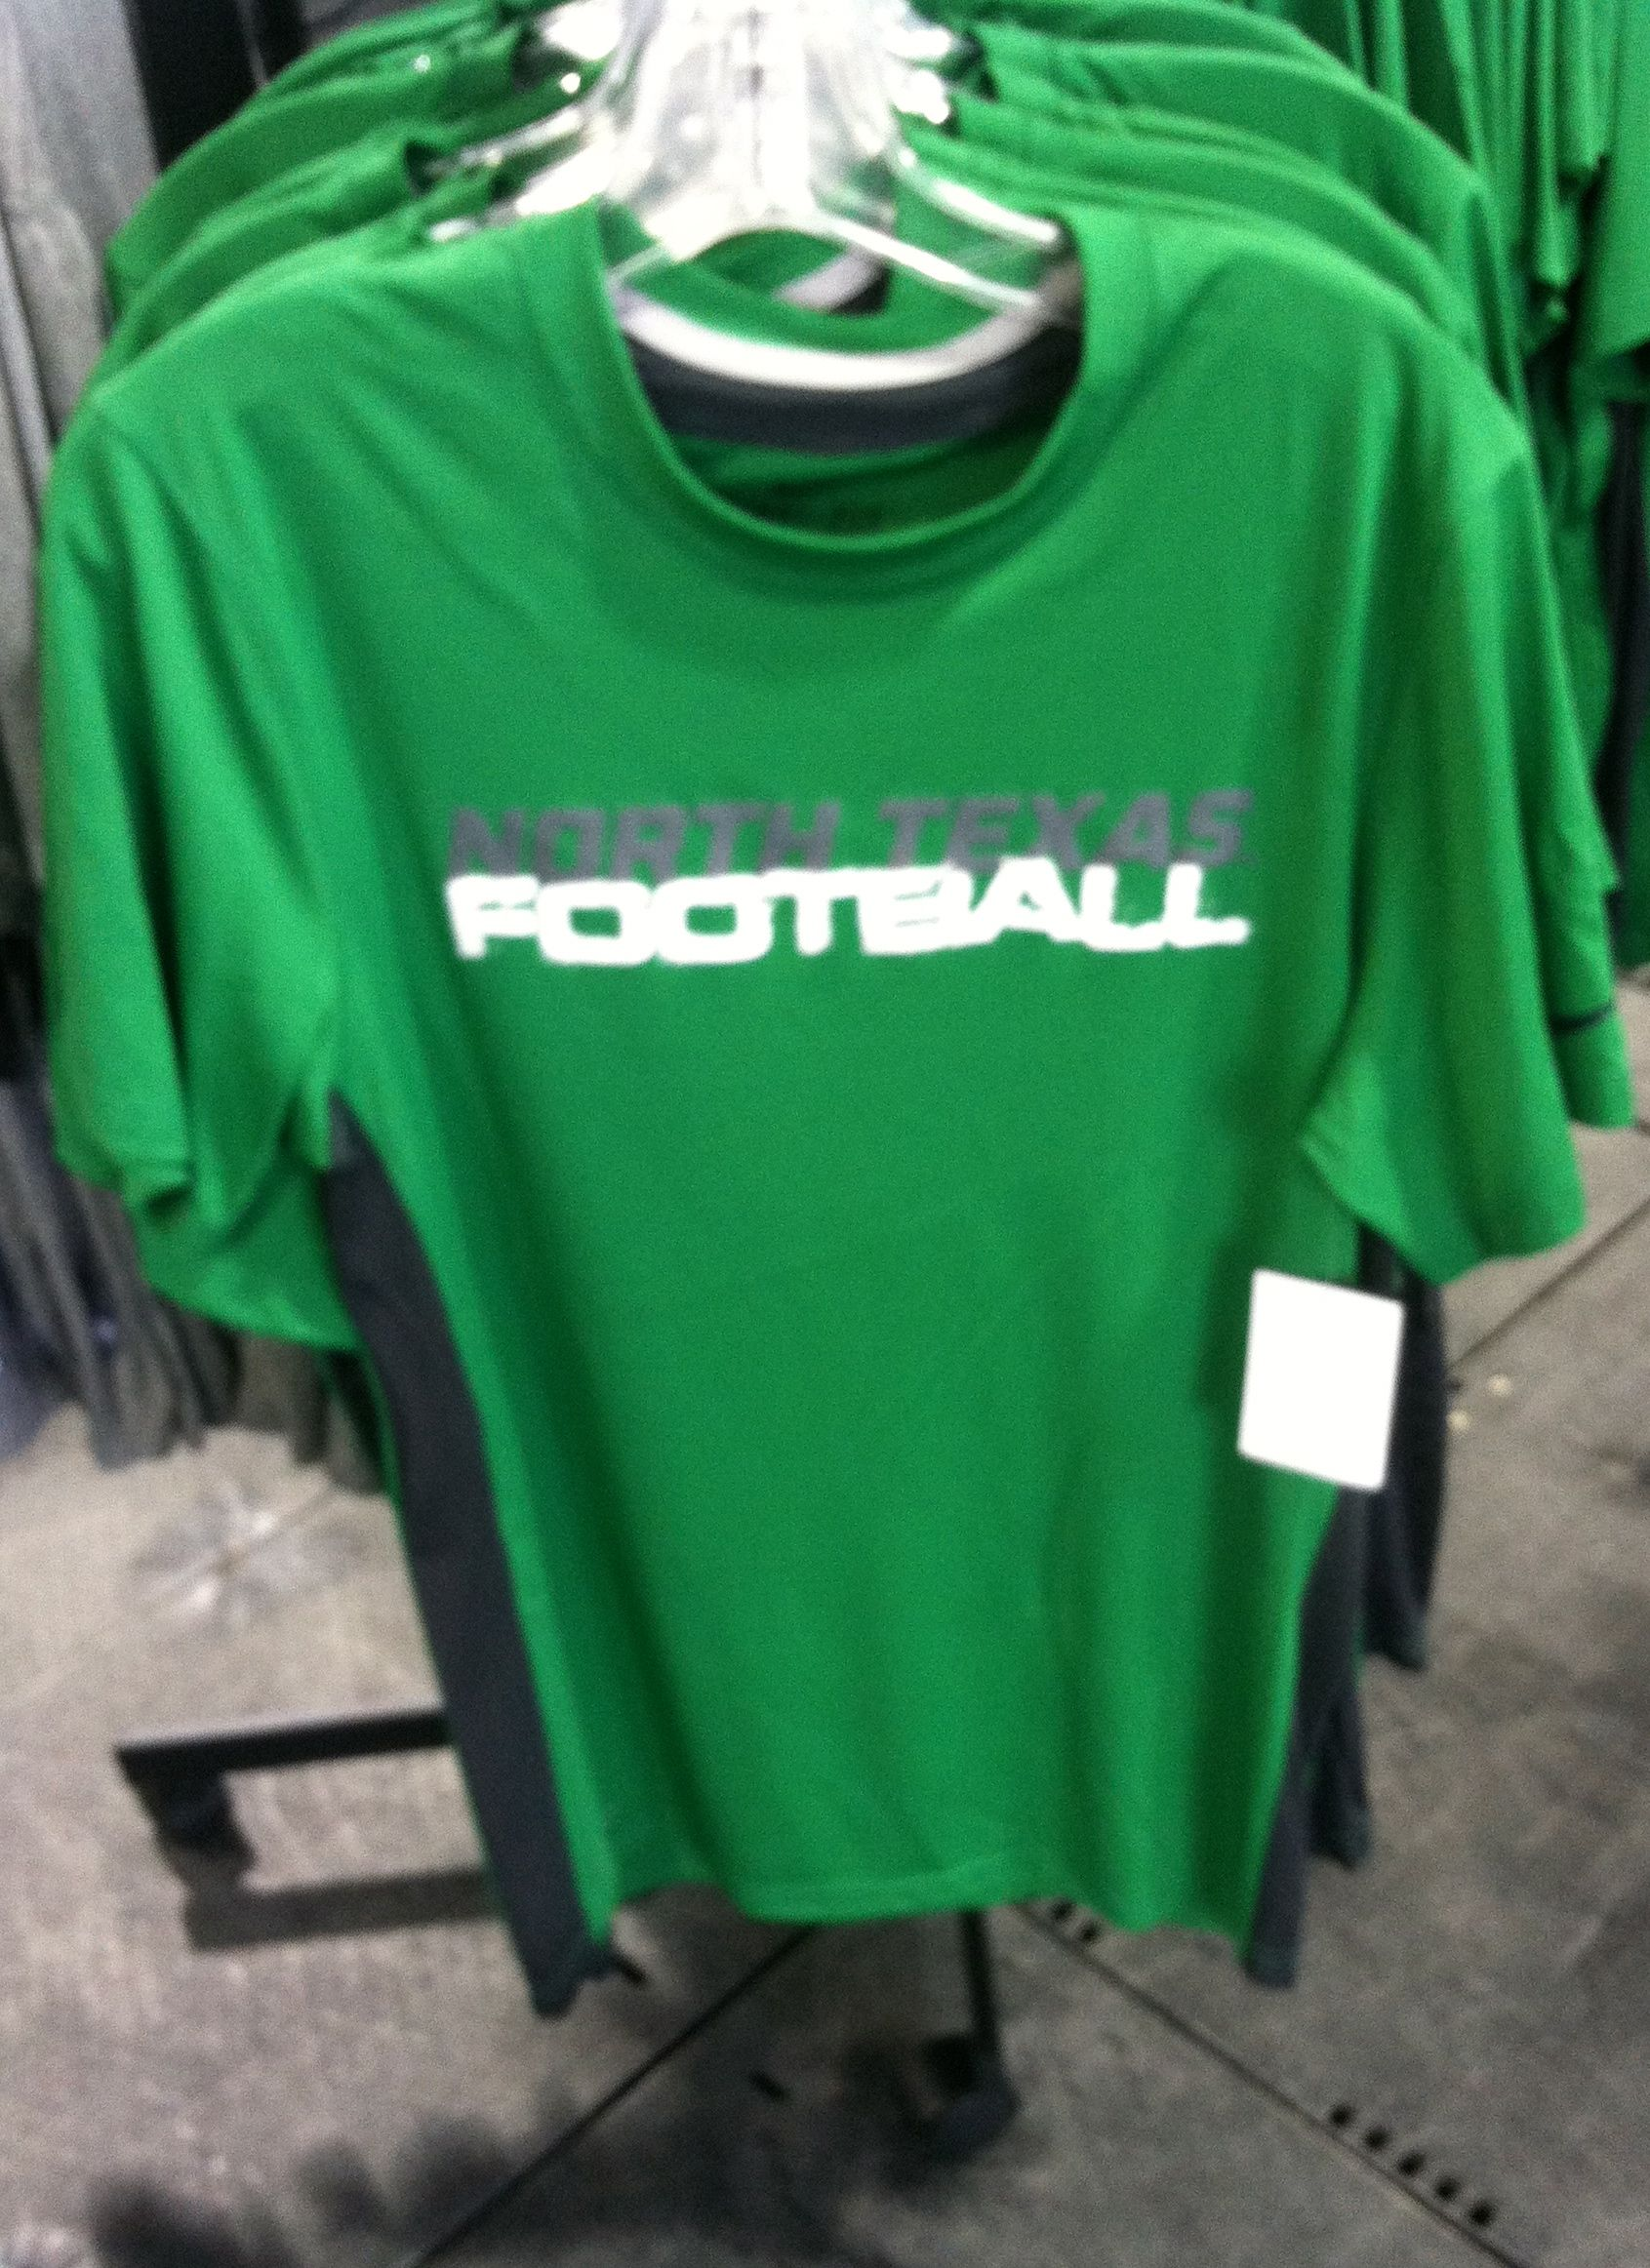 8b76087e5cf2 Nike DriFit North Texas Football shirt  45.00 at the UNT Barnes and Noble  bookstore white tent